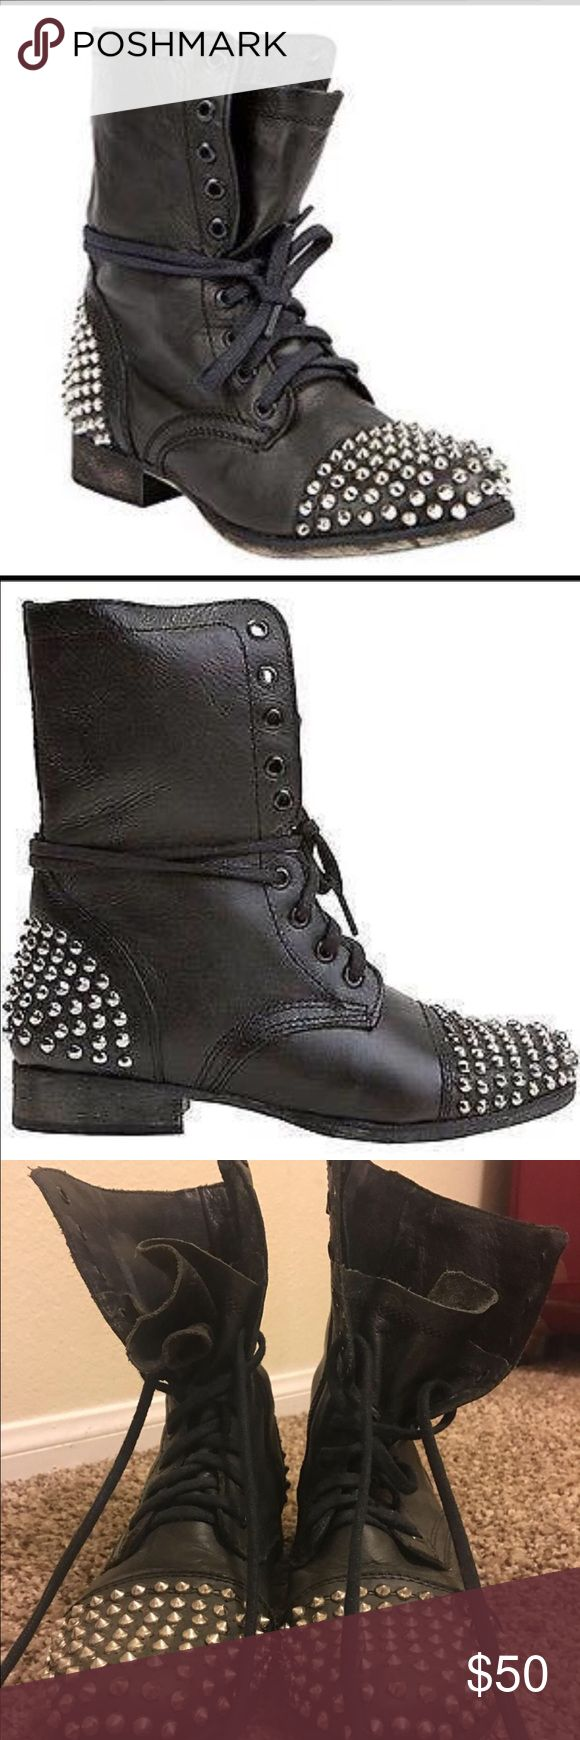 Steve Madden studded combat boots Worn a couple times very comfortable Steve Madden Shoes Combat & Moto Boots